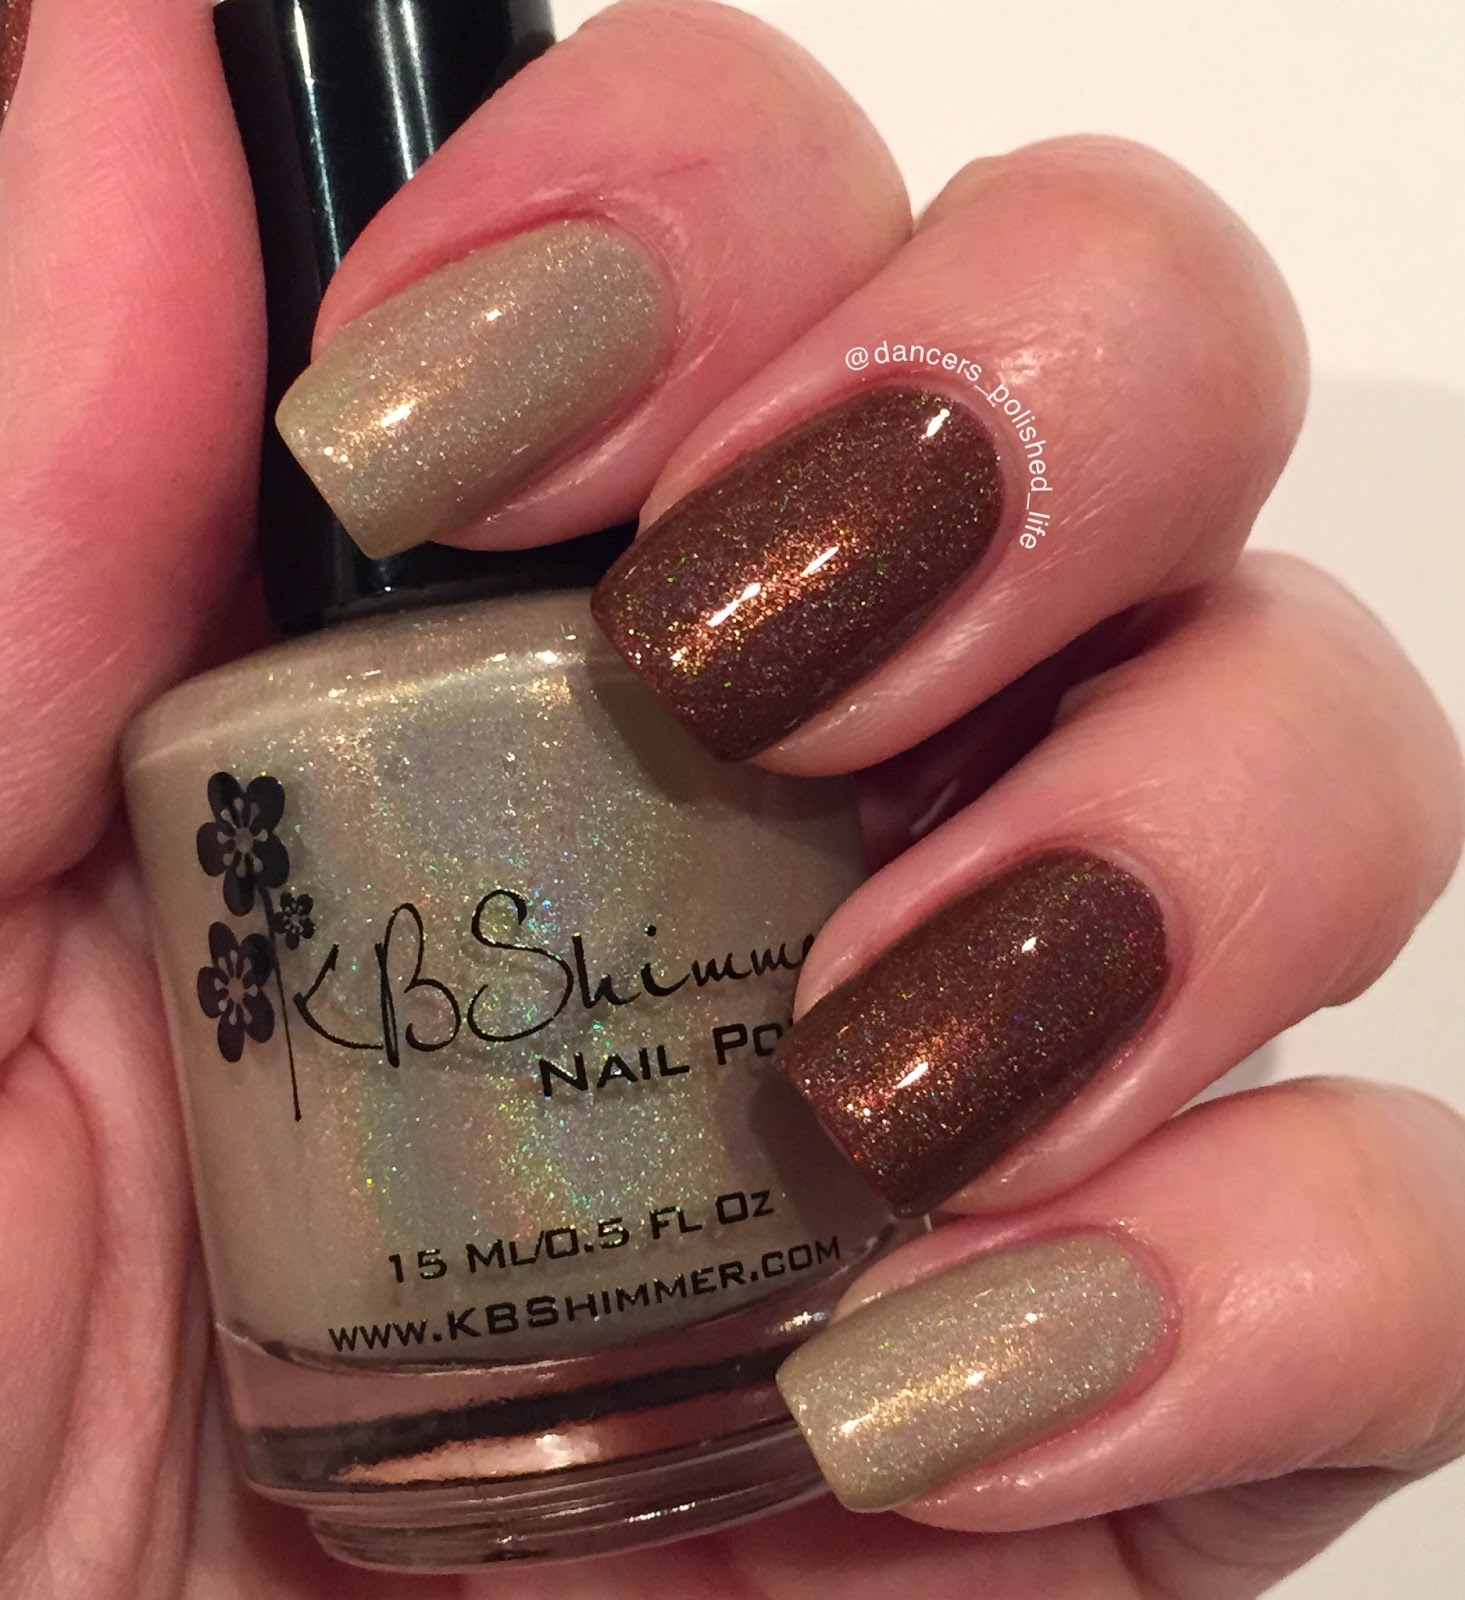 kbshimmer-in-bare-form-swatch